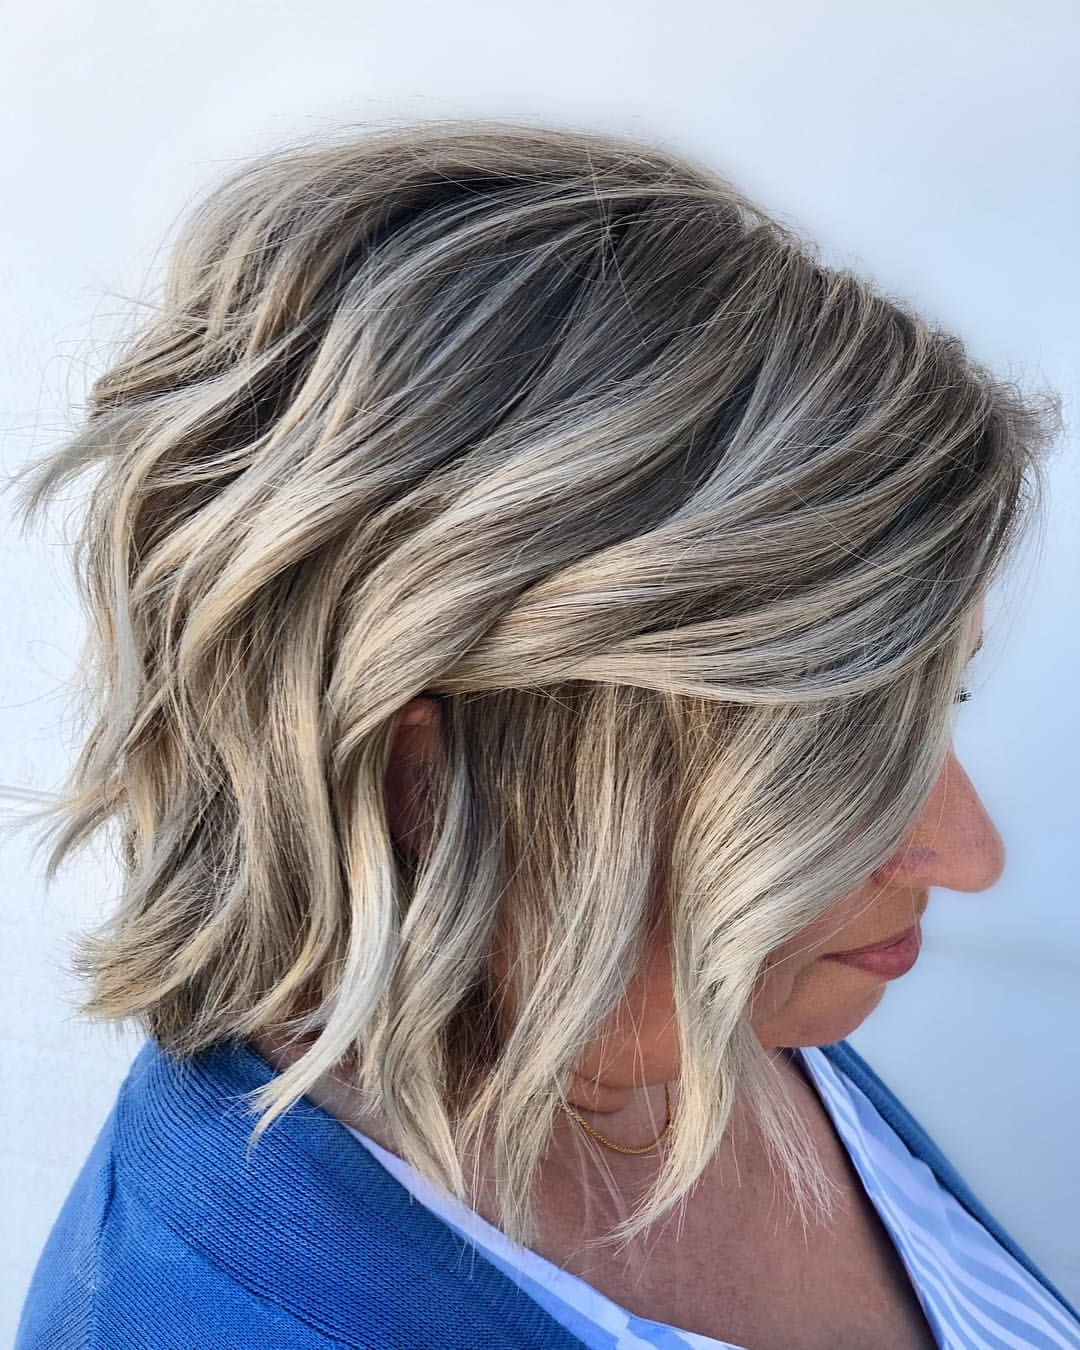 Pin On Hair And Makeup Regarding Short Textured Hairstyles With Balayage (Gallery 5 of 20)